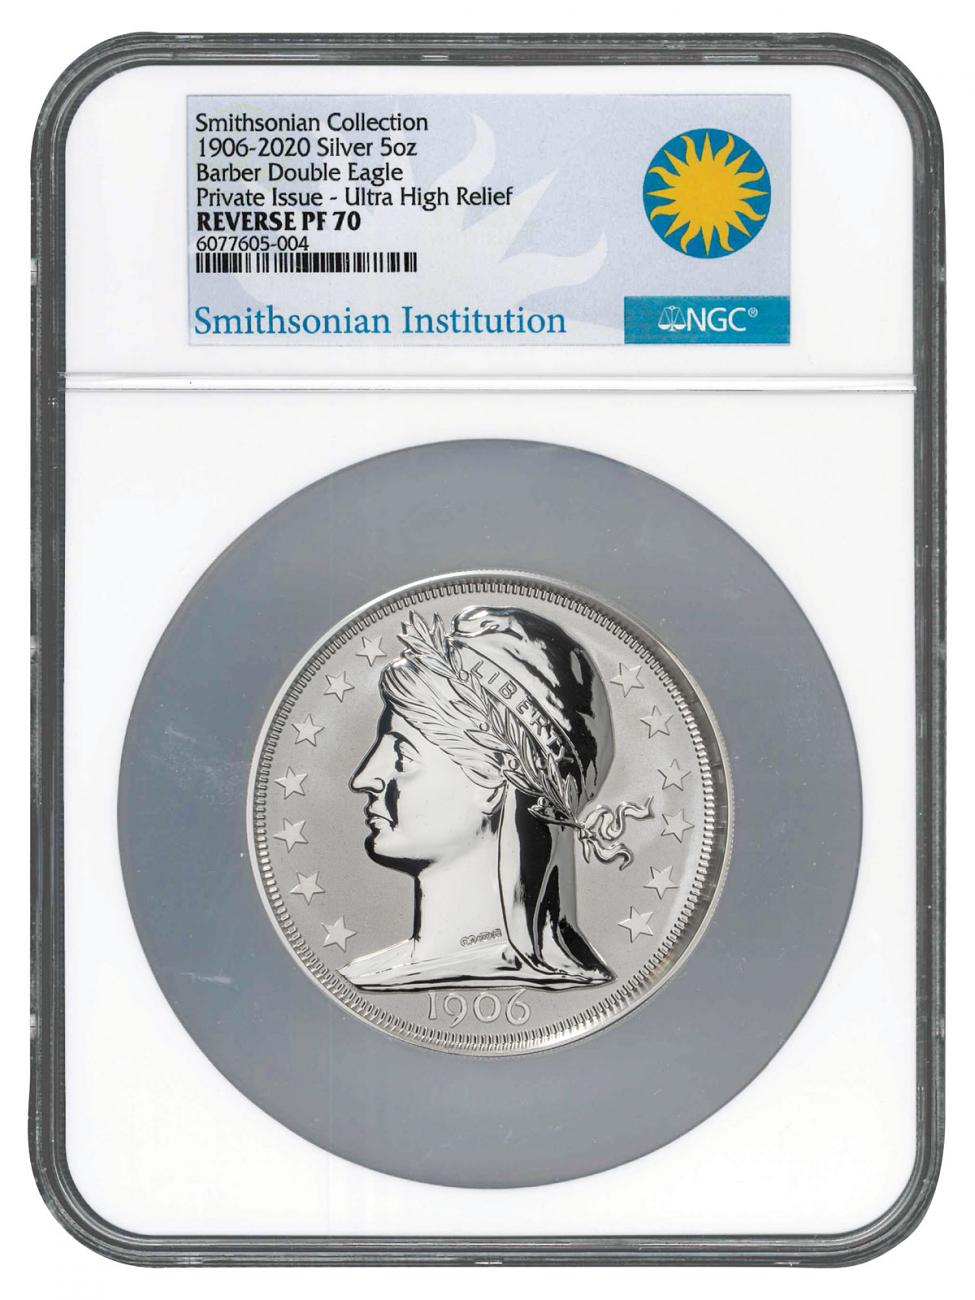 2020 Barber Double Eagle Ultra High Relief 5 oz Silver Reverse Proof Medal Scarce and Unique Coin Division NGC PF70 UC